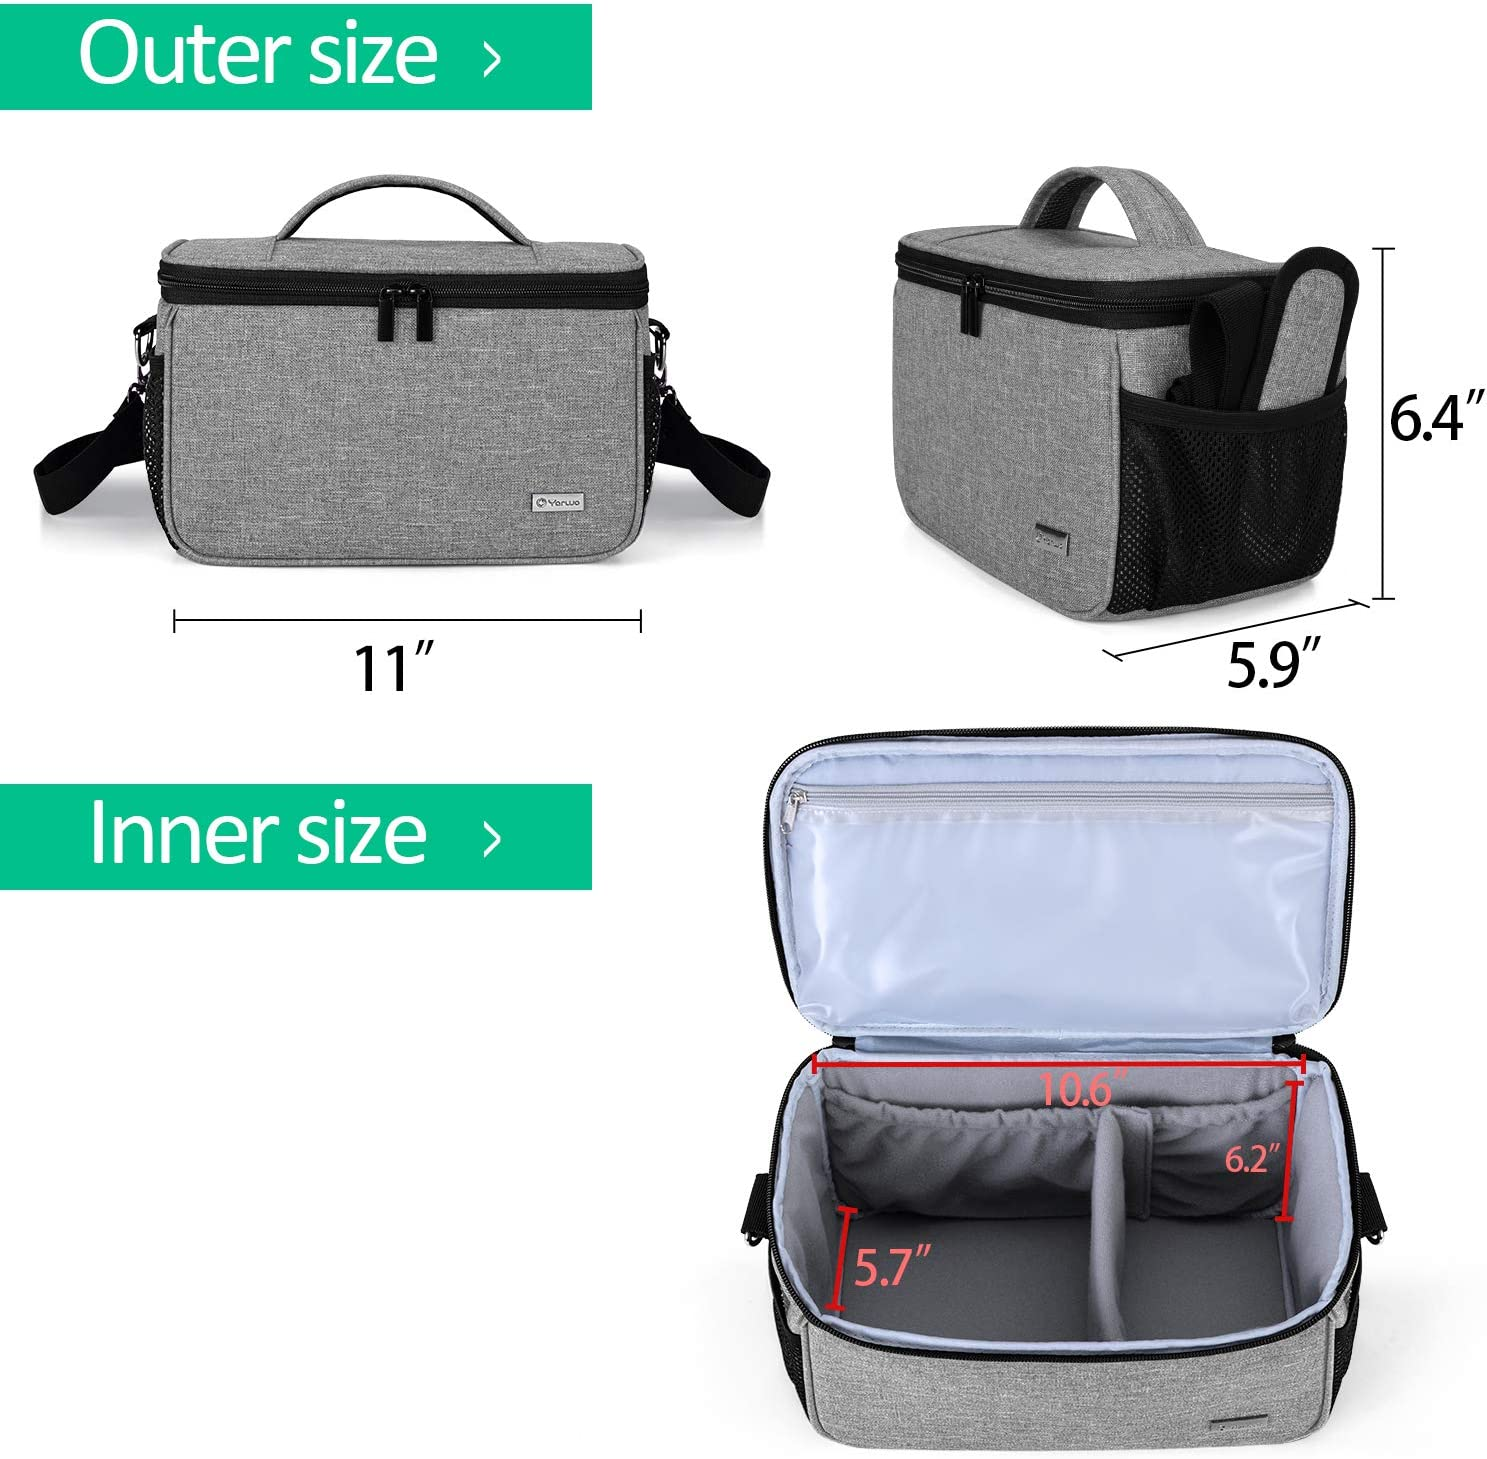 Black Yarwo Carrying Case Compatible with Cricut Joy Portable Tote Bag with Pockets for Craft Tools Set